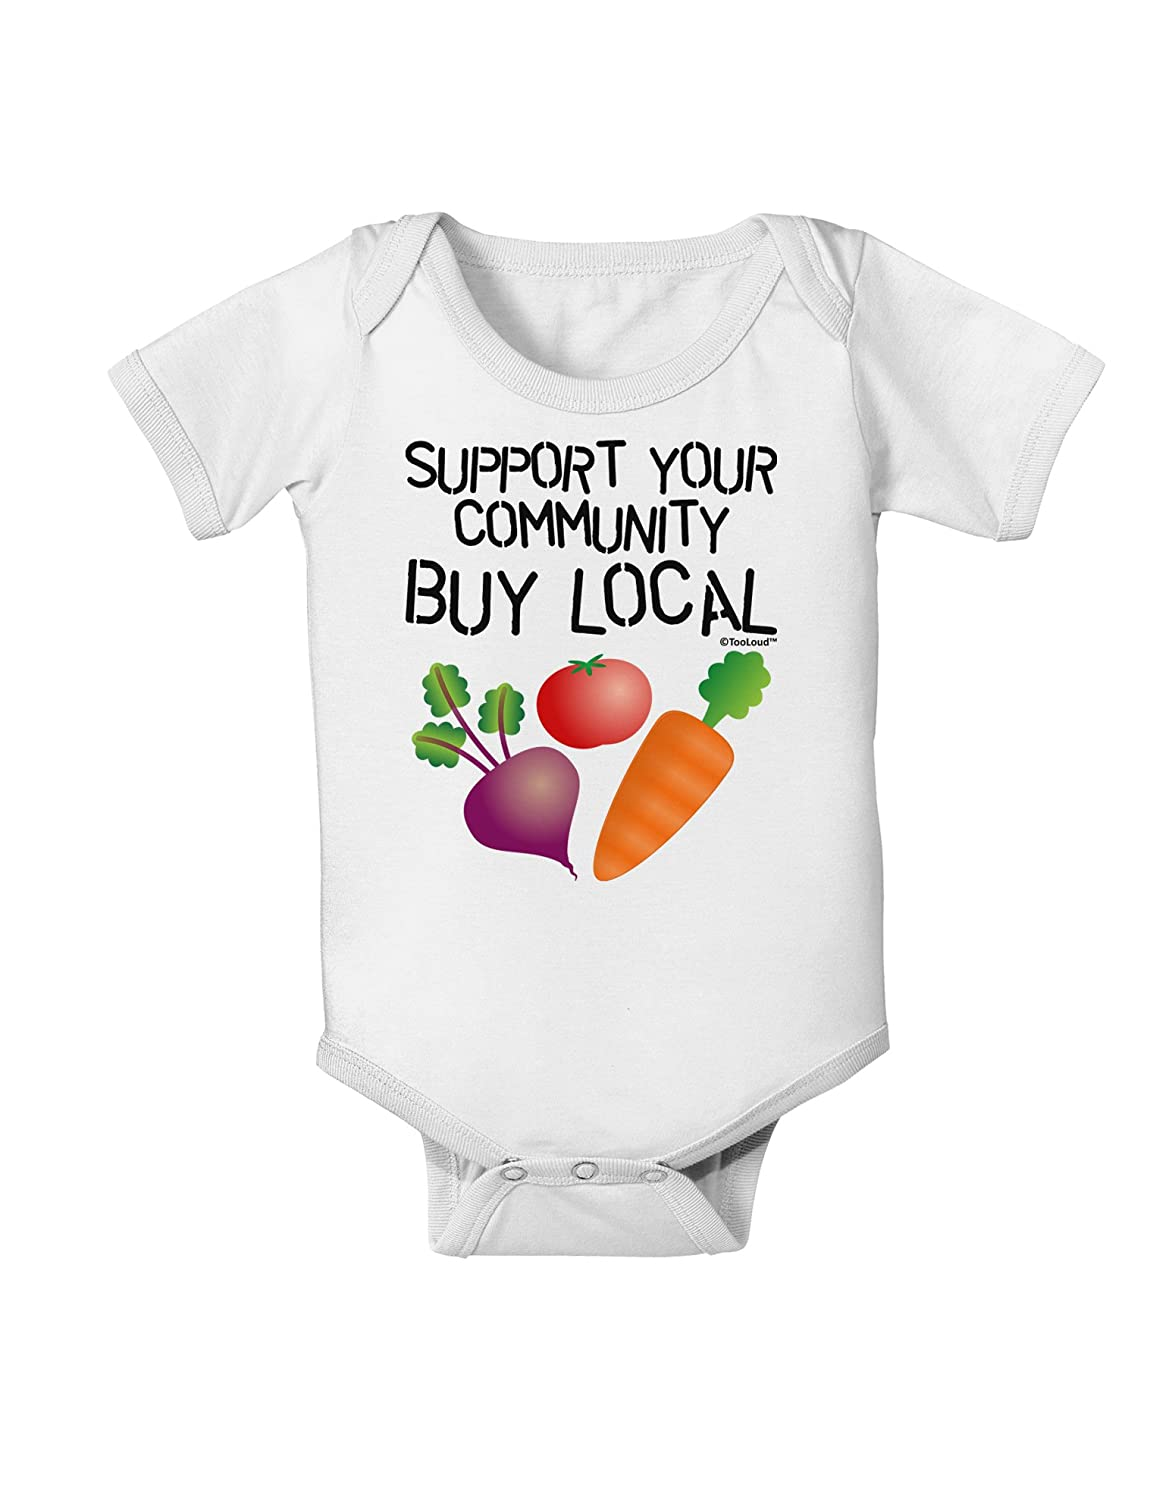 Buy Local Baby Romper Bodysuit TooLoud Support Your Community